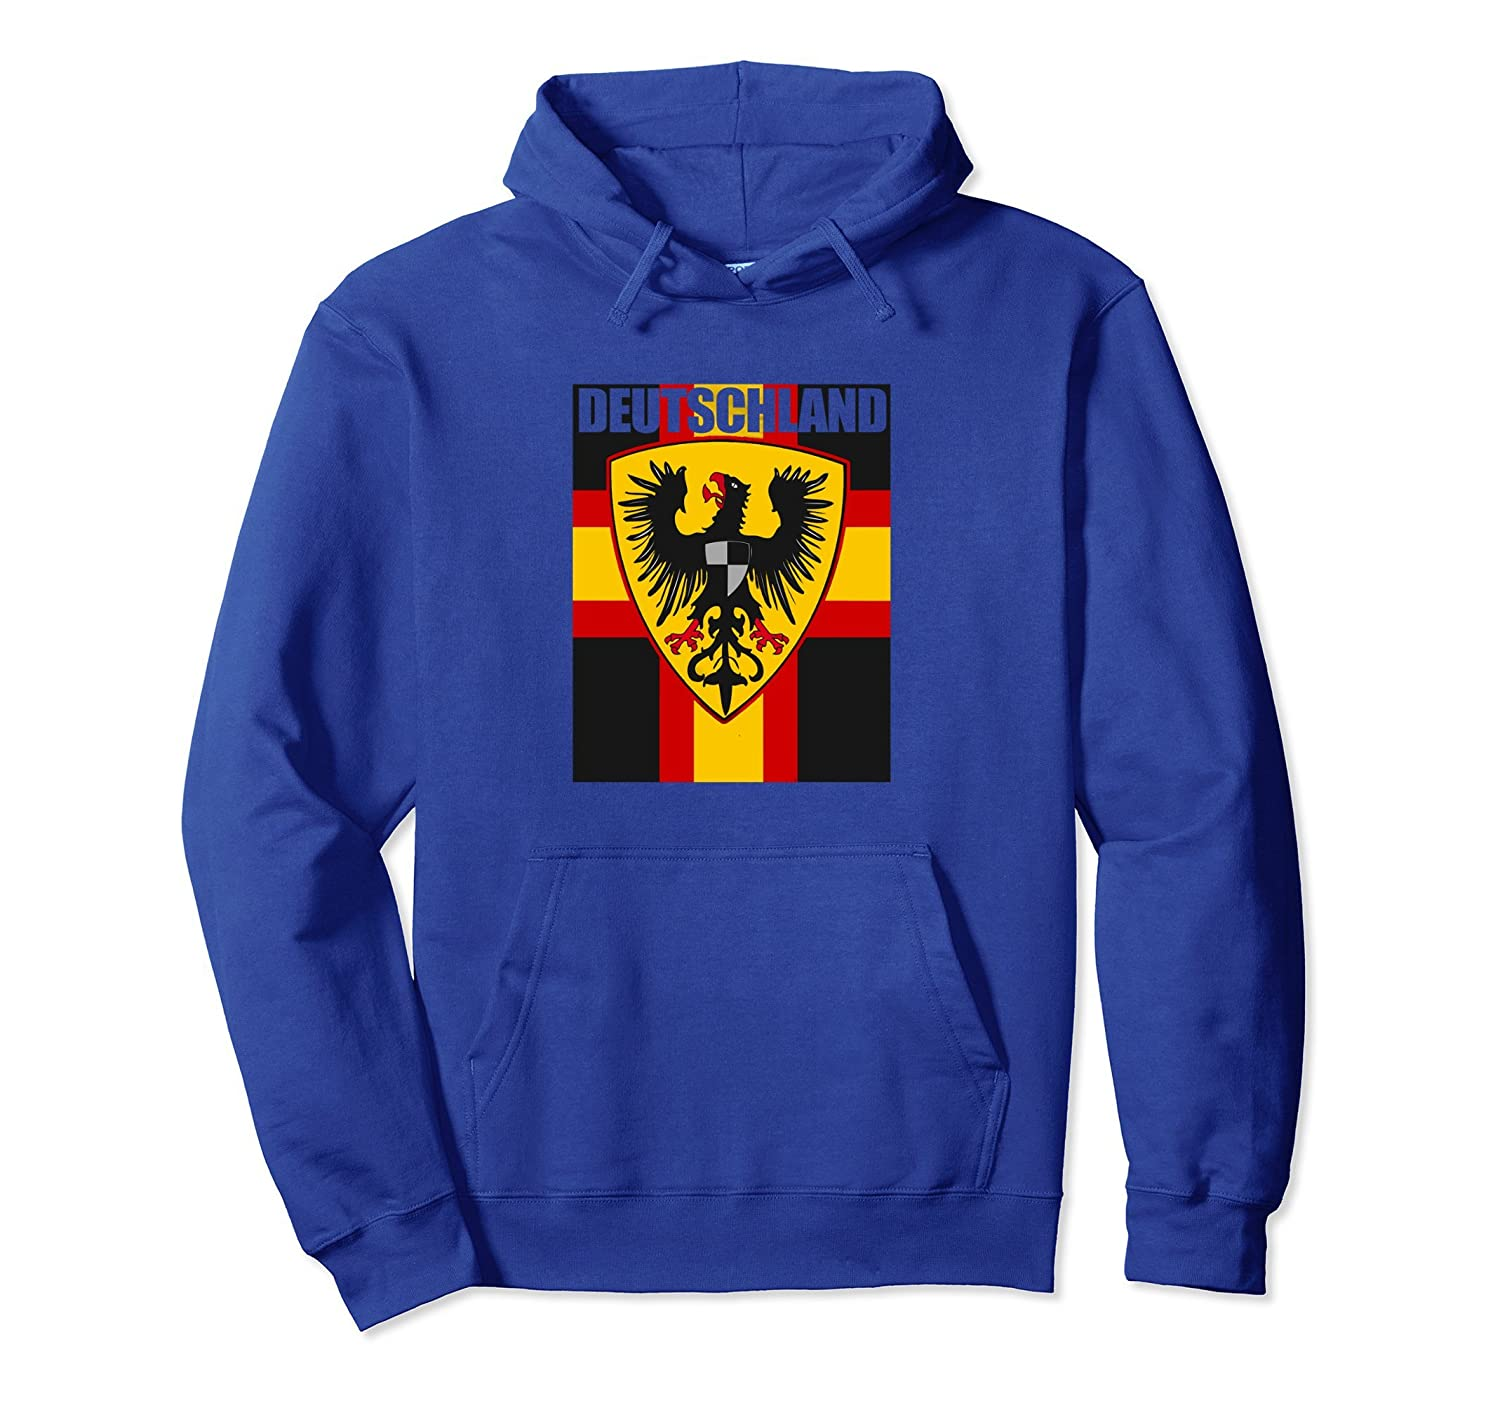 Deutschland Hoodie German Flag Germany Soccer Jersey Style ah my shirt one gift